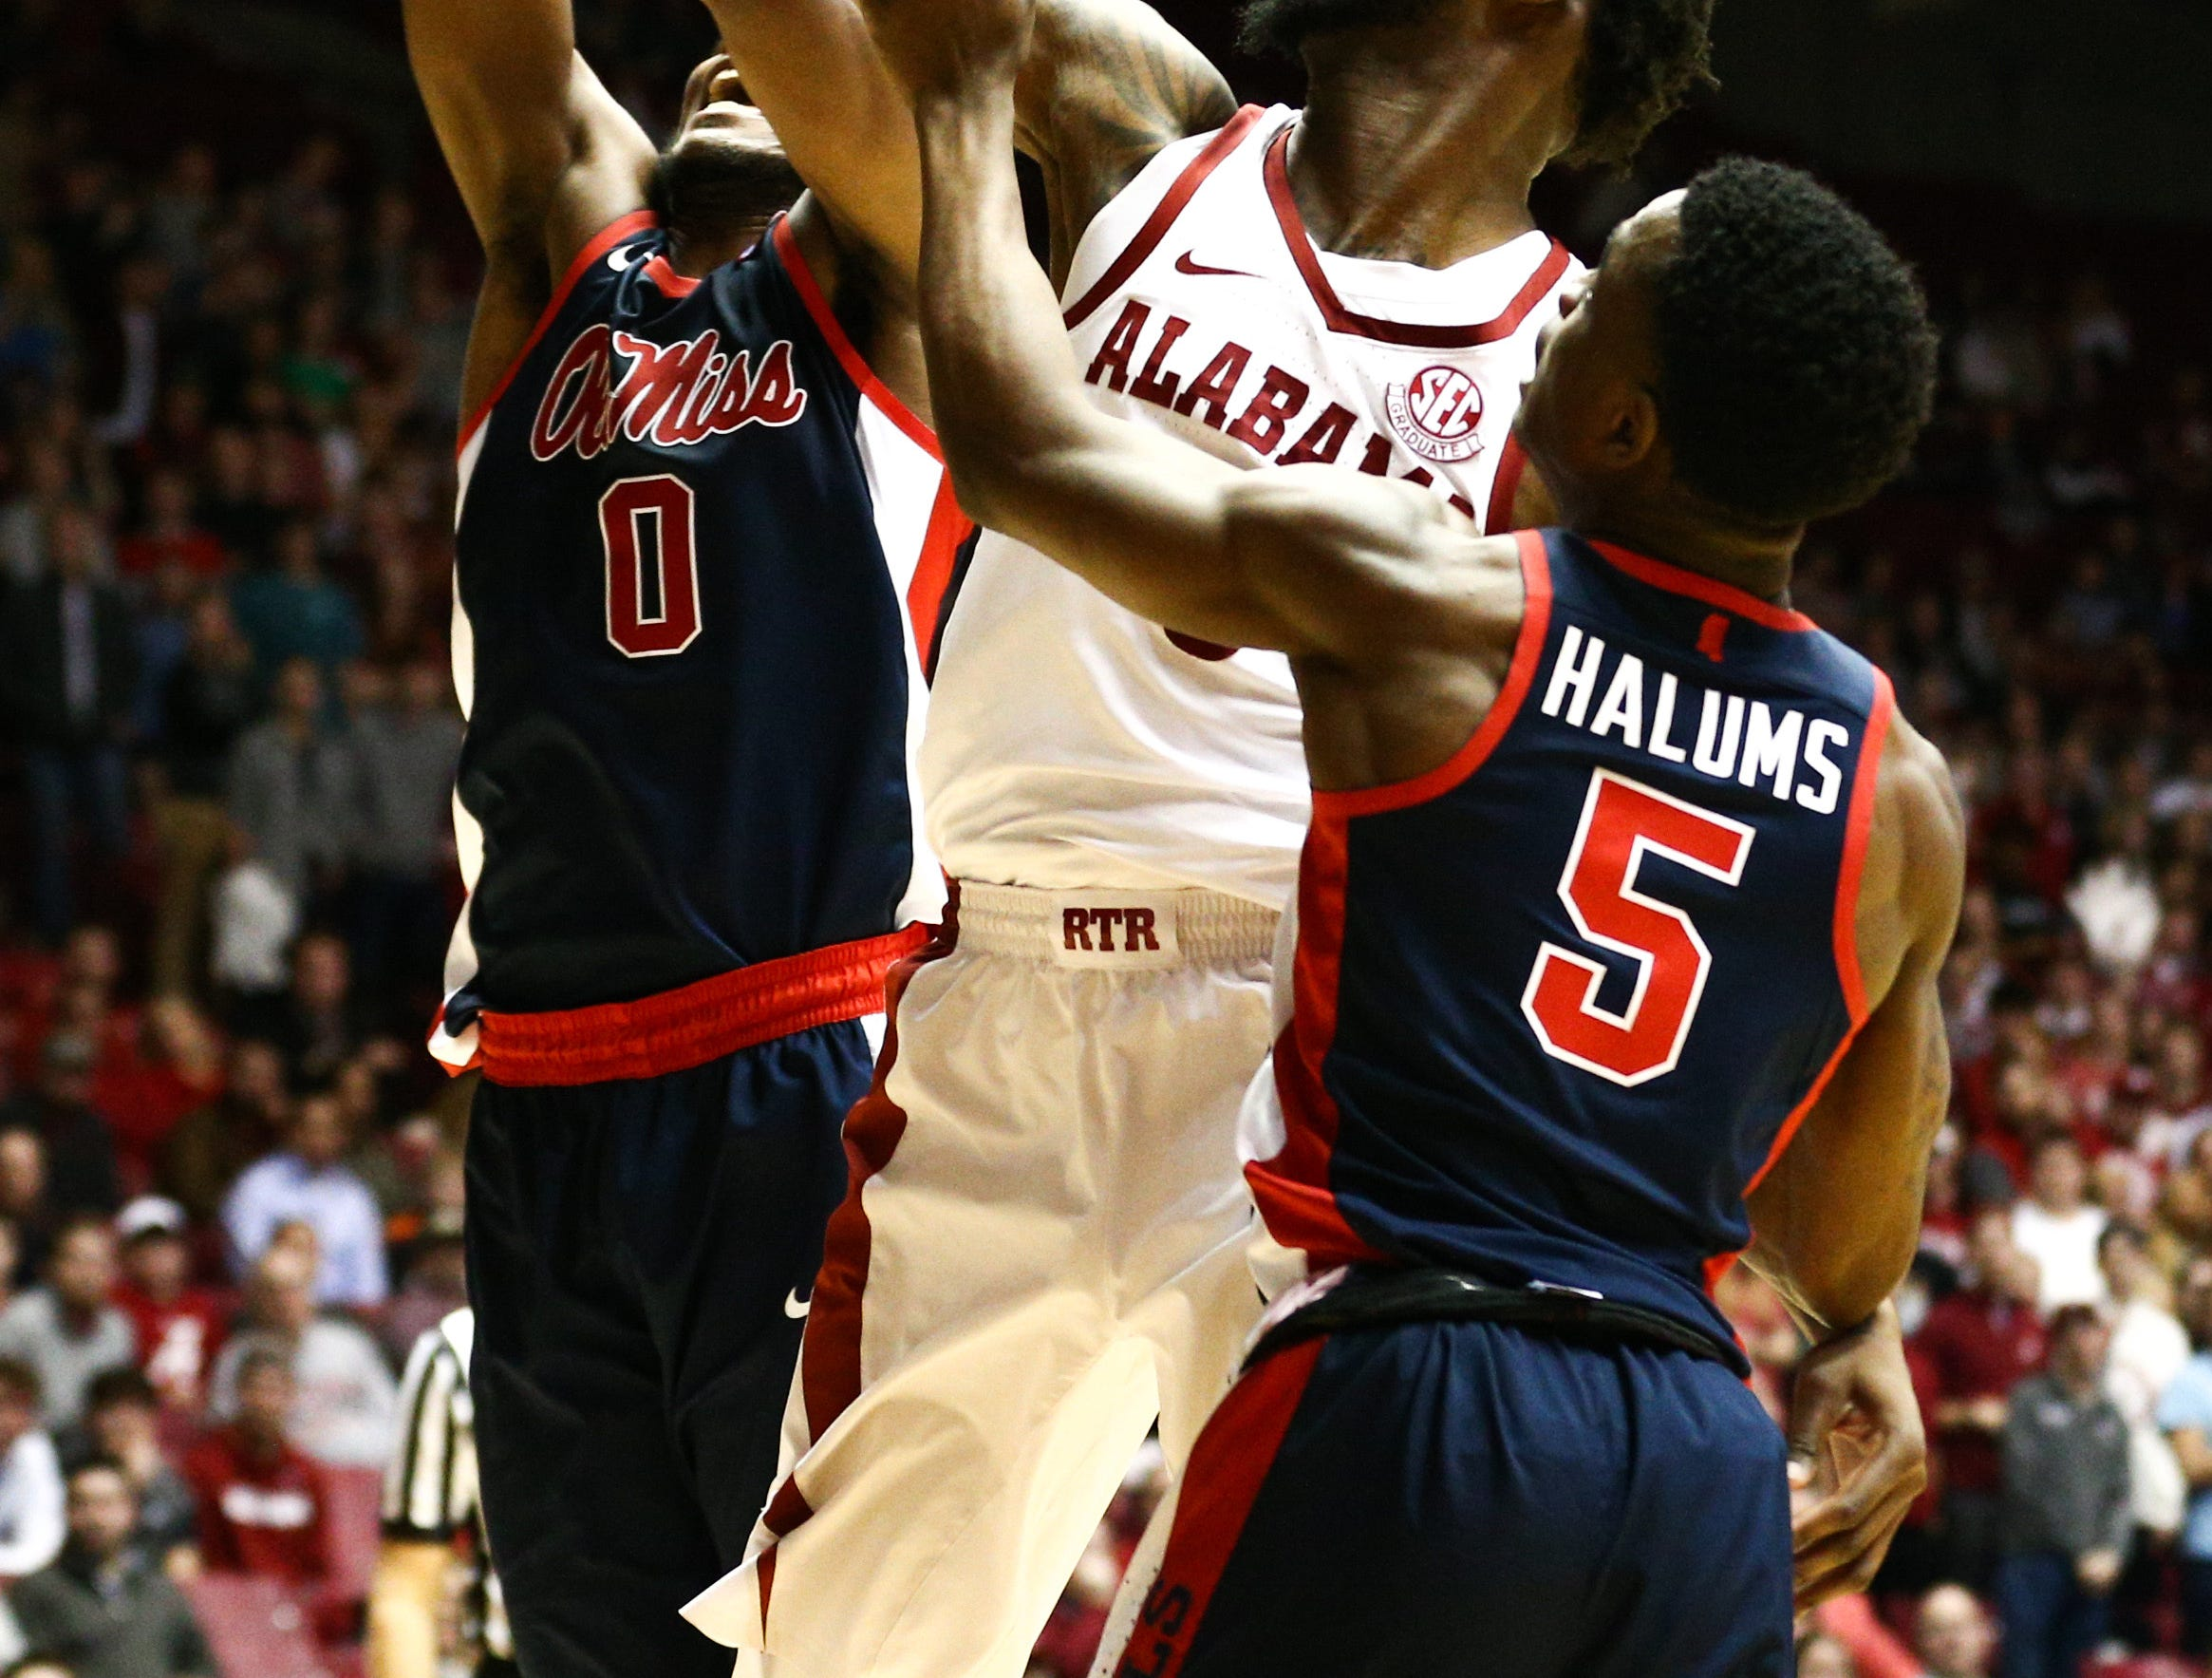 Jan 22, 2019; Tuscaloosa, AL, USA; Alabama Crimson Tide forward Donta Hall (middle) jumps for a rebound against Mississippi Rebels guard Blake Hinson (0) during the second half at Coleman Coliseum. Mandatory Credit: Marvin Gentry-USA TODAY Sports